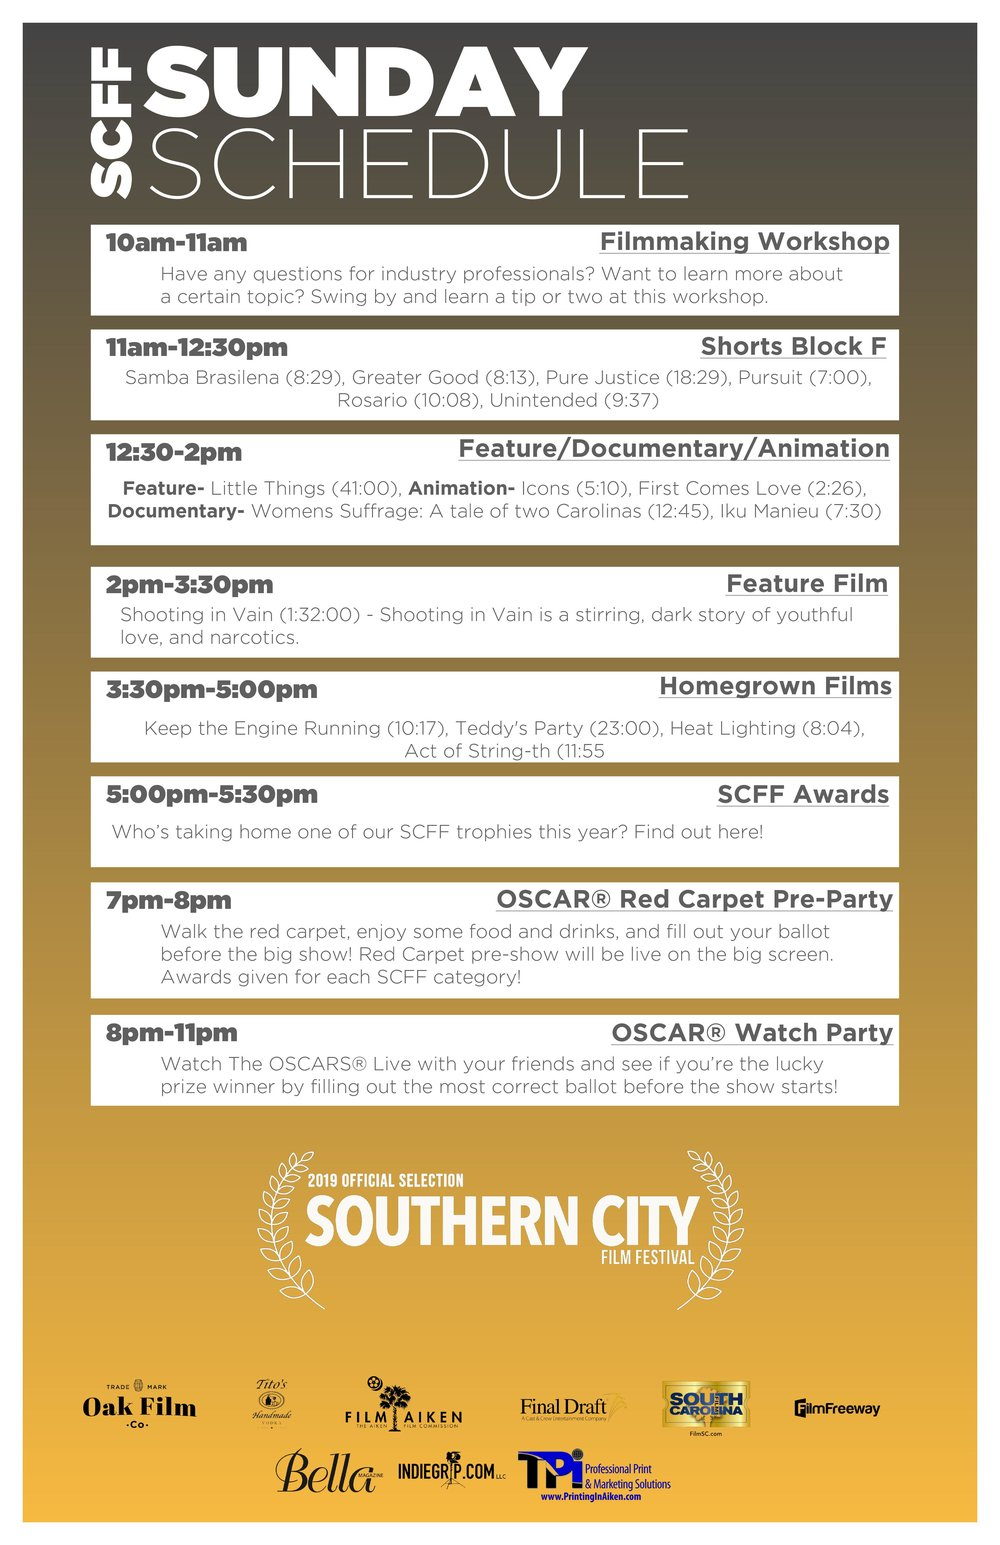 Sunday Feb 24th - Day 3: The films aren't over yet, we have some great features, documentaries, animation, shorts, and homegrown films today!And you don't want to miss the OSCARS® Watch Party tonight!